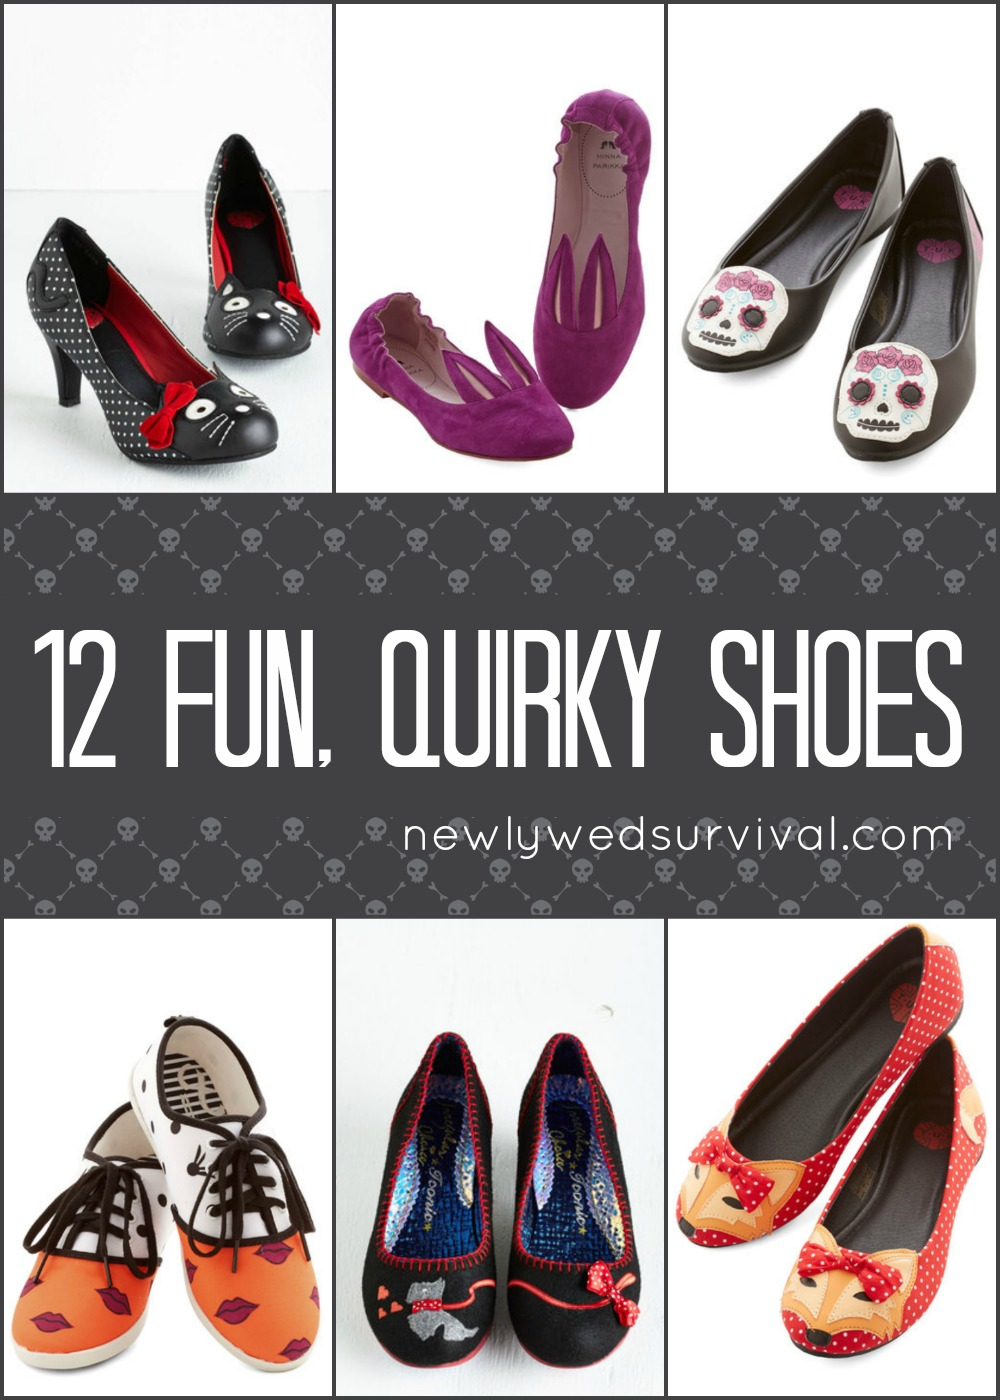 Add Some Fun, Quirky Shoes to Your Wardrobe this Spring